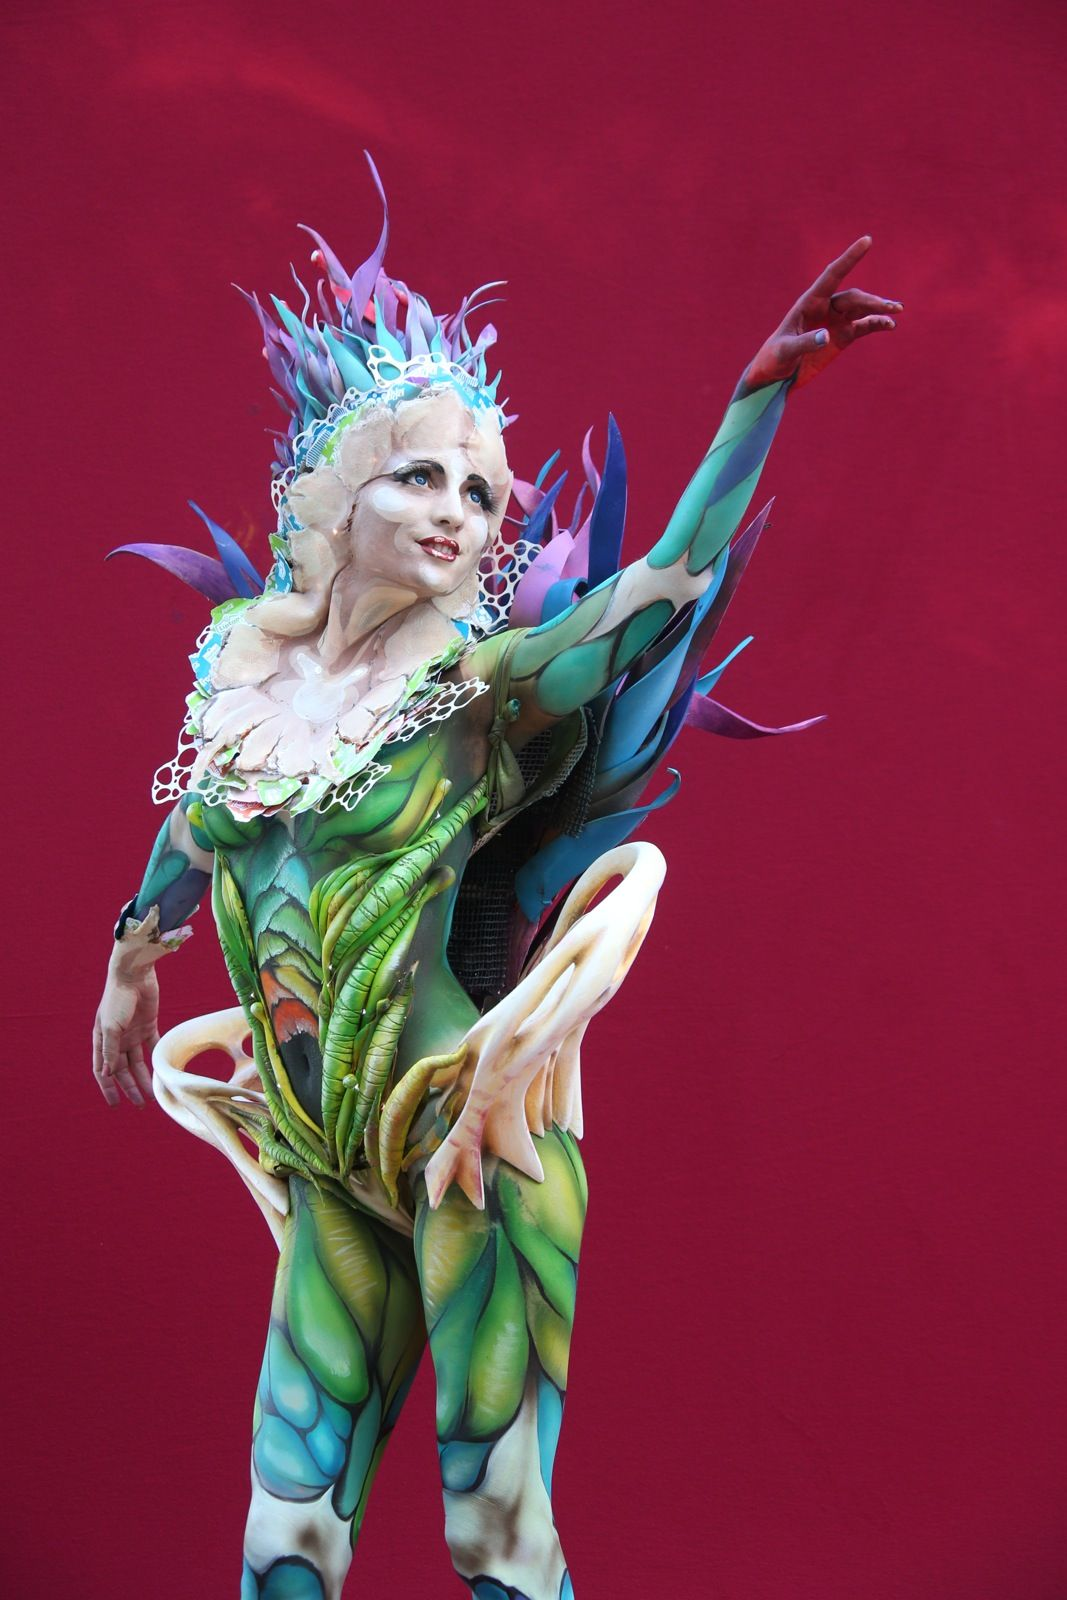 Photo of Everfest – These Photos of the 2014 World Bodypainting Festival Will Blow Your M…